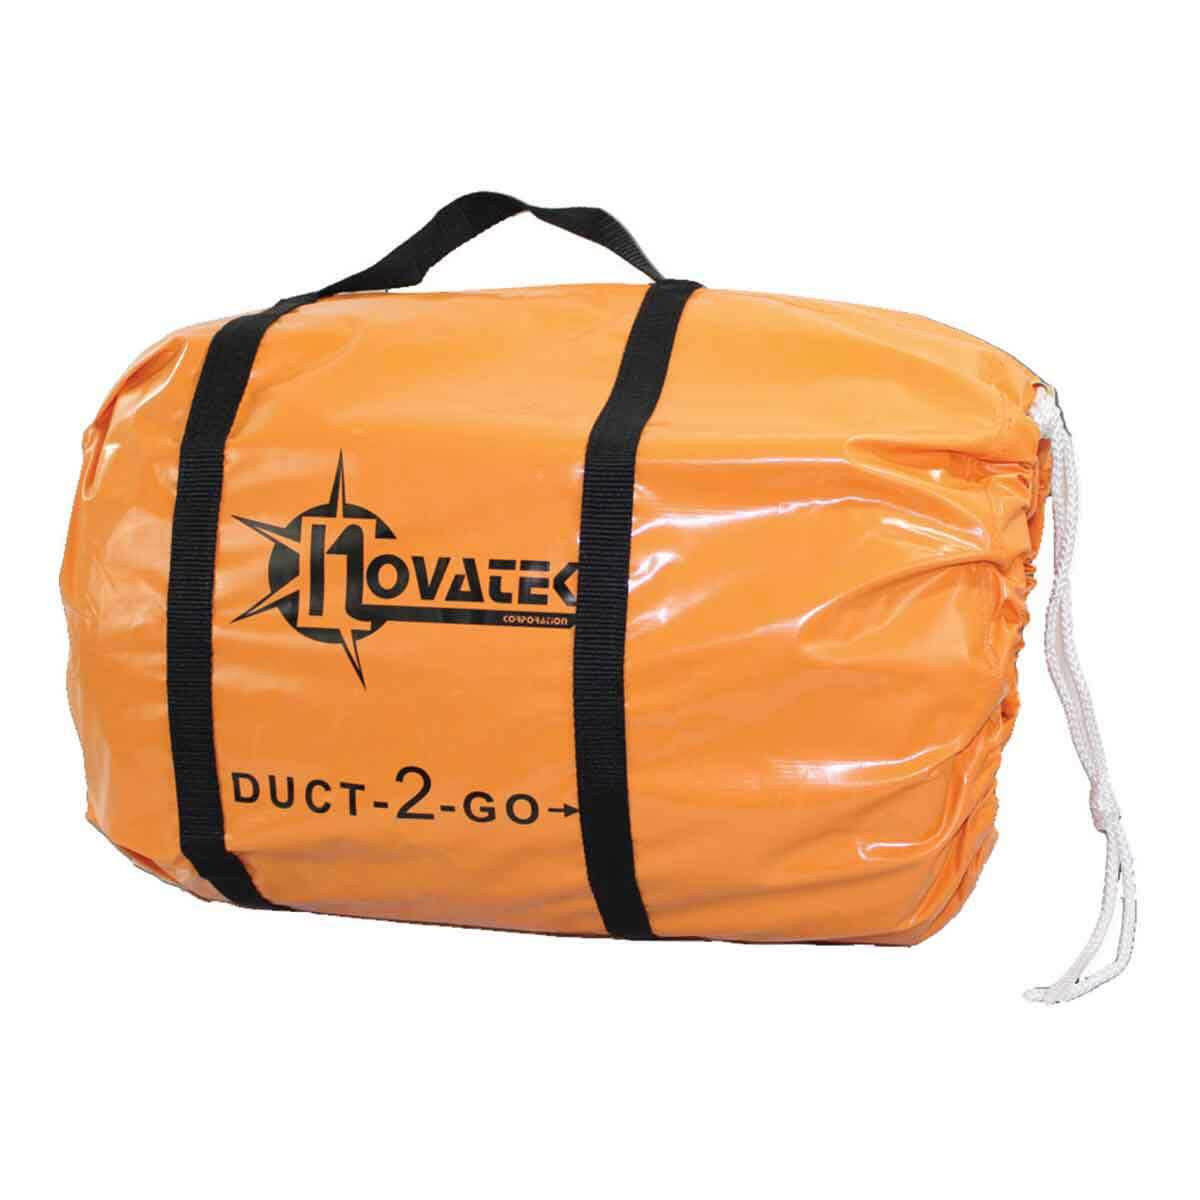 Novatek Novair Duct-2-Go Air Ducting Carrying Case